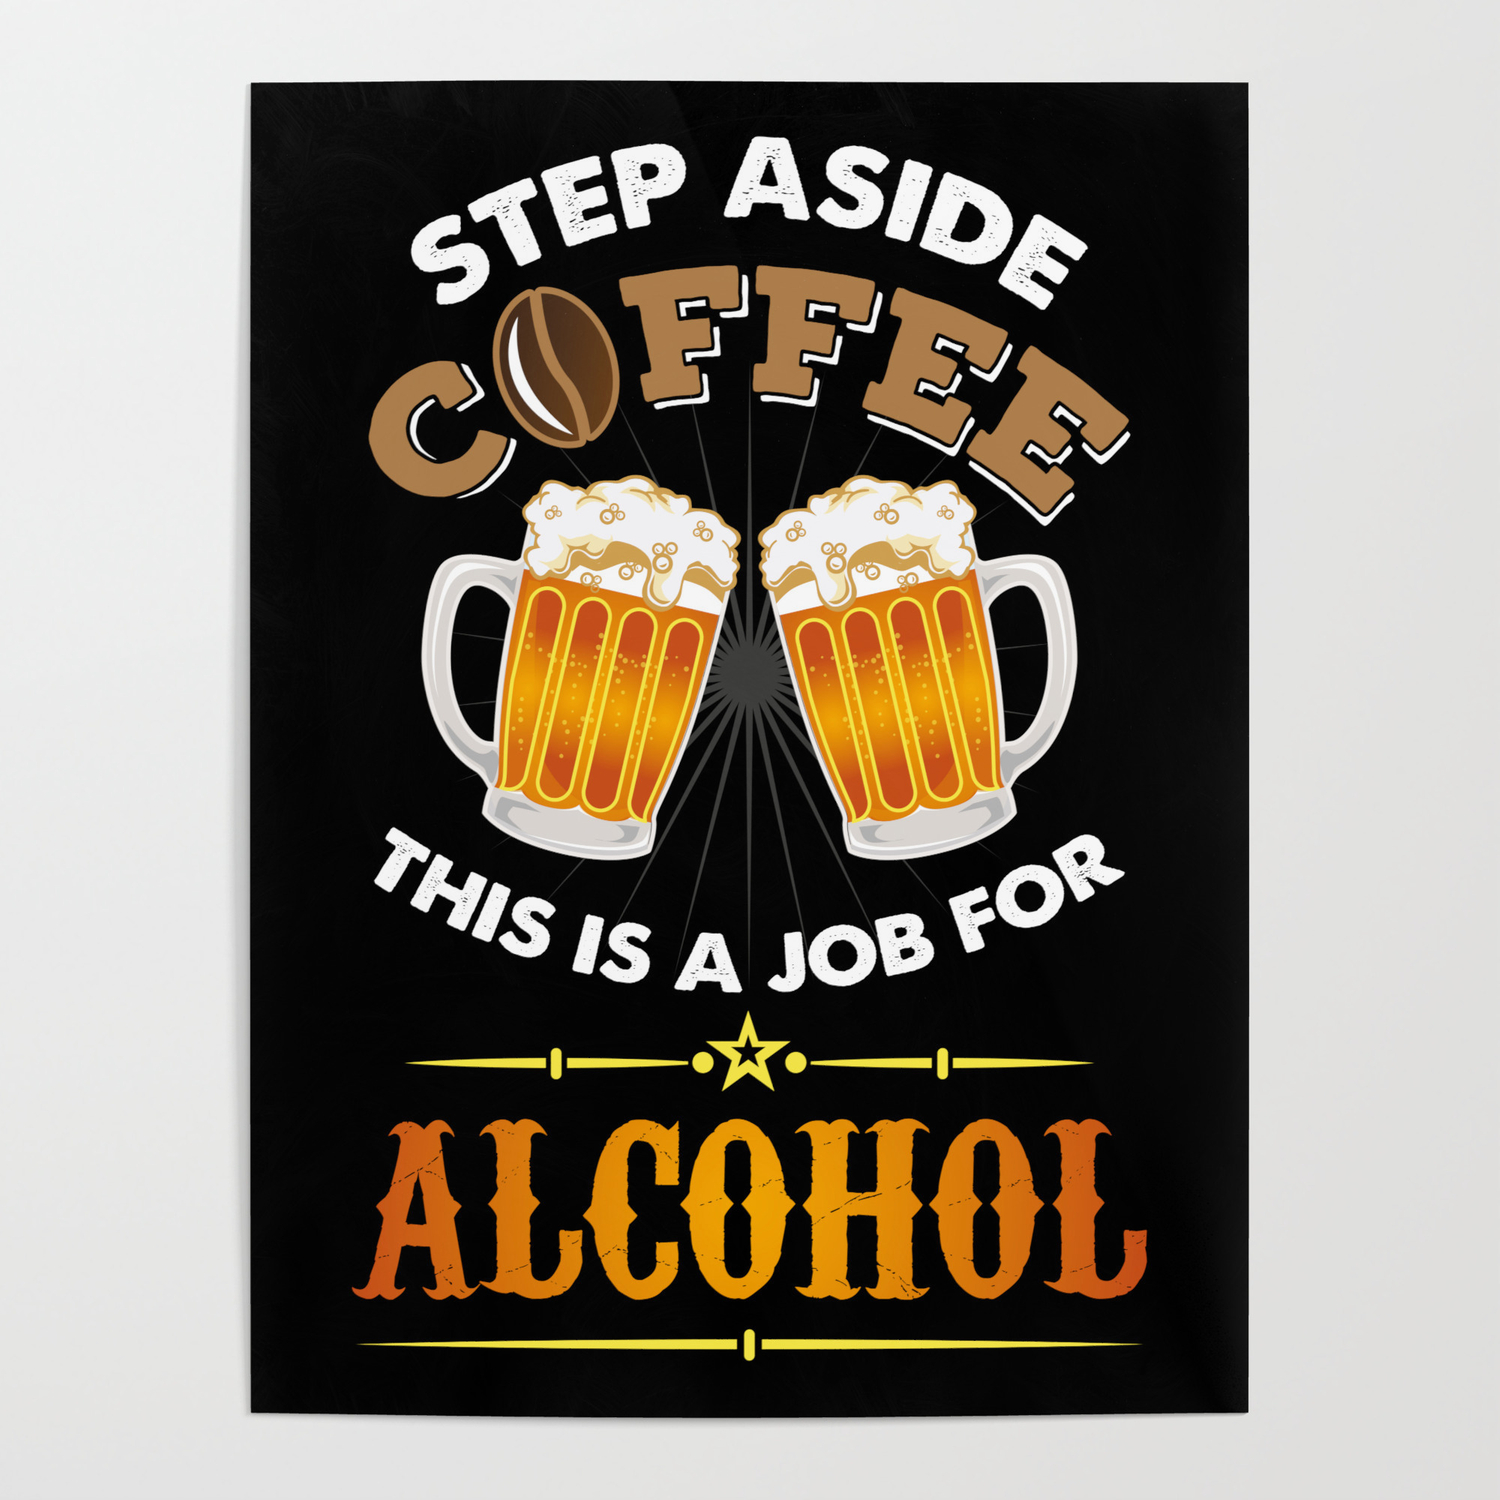 b8efed2bb Funny Drinking Shirt: Step Aside Coffee - Job for Alcohol Poster by ...